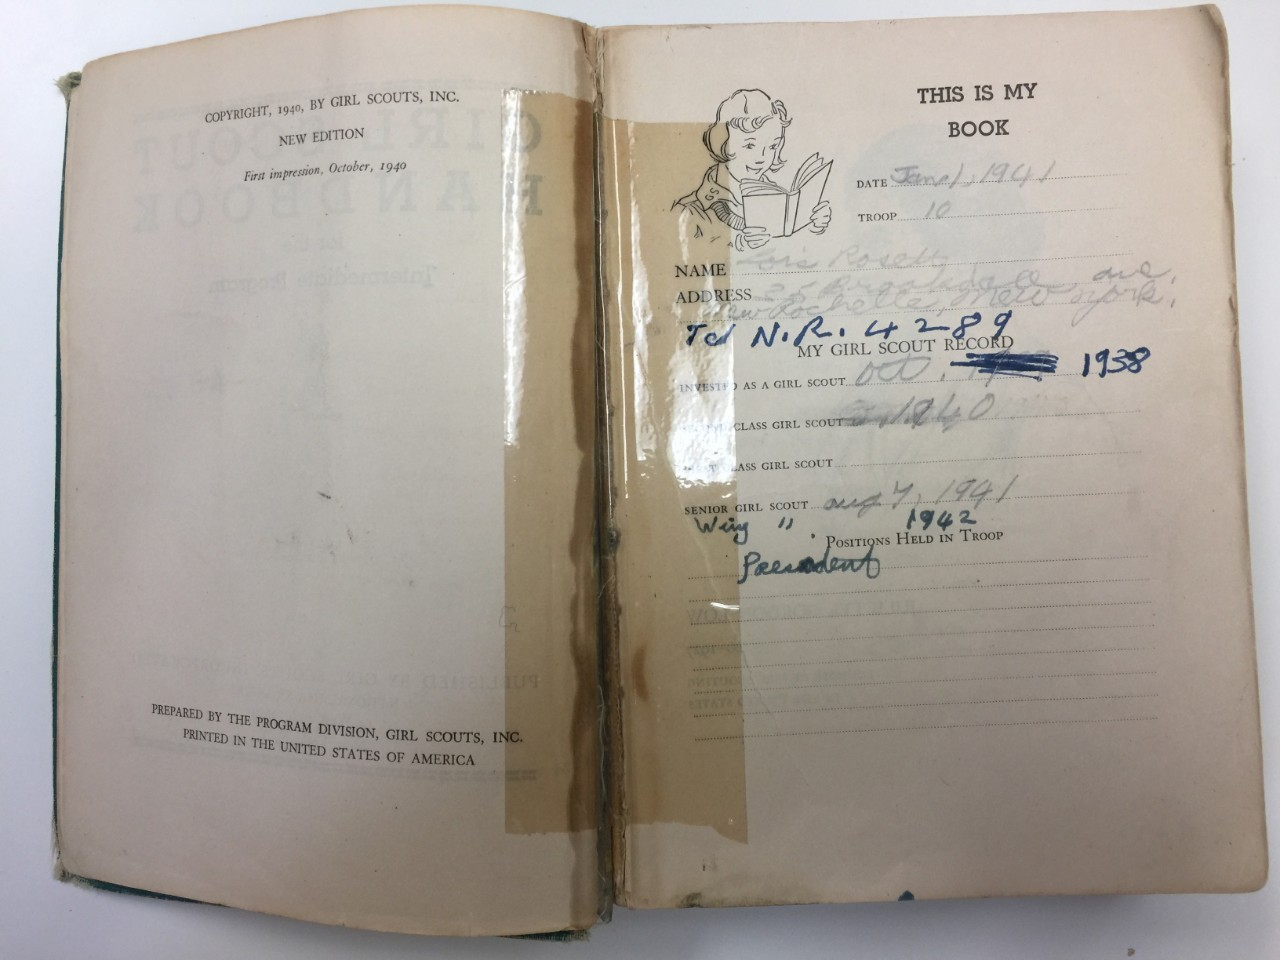 This is my book (handwritten notes 1938-42)